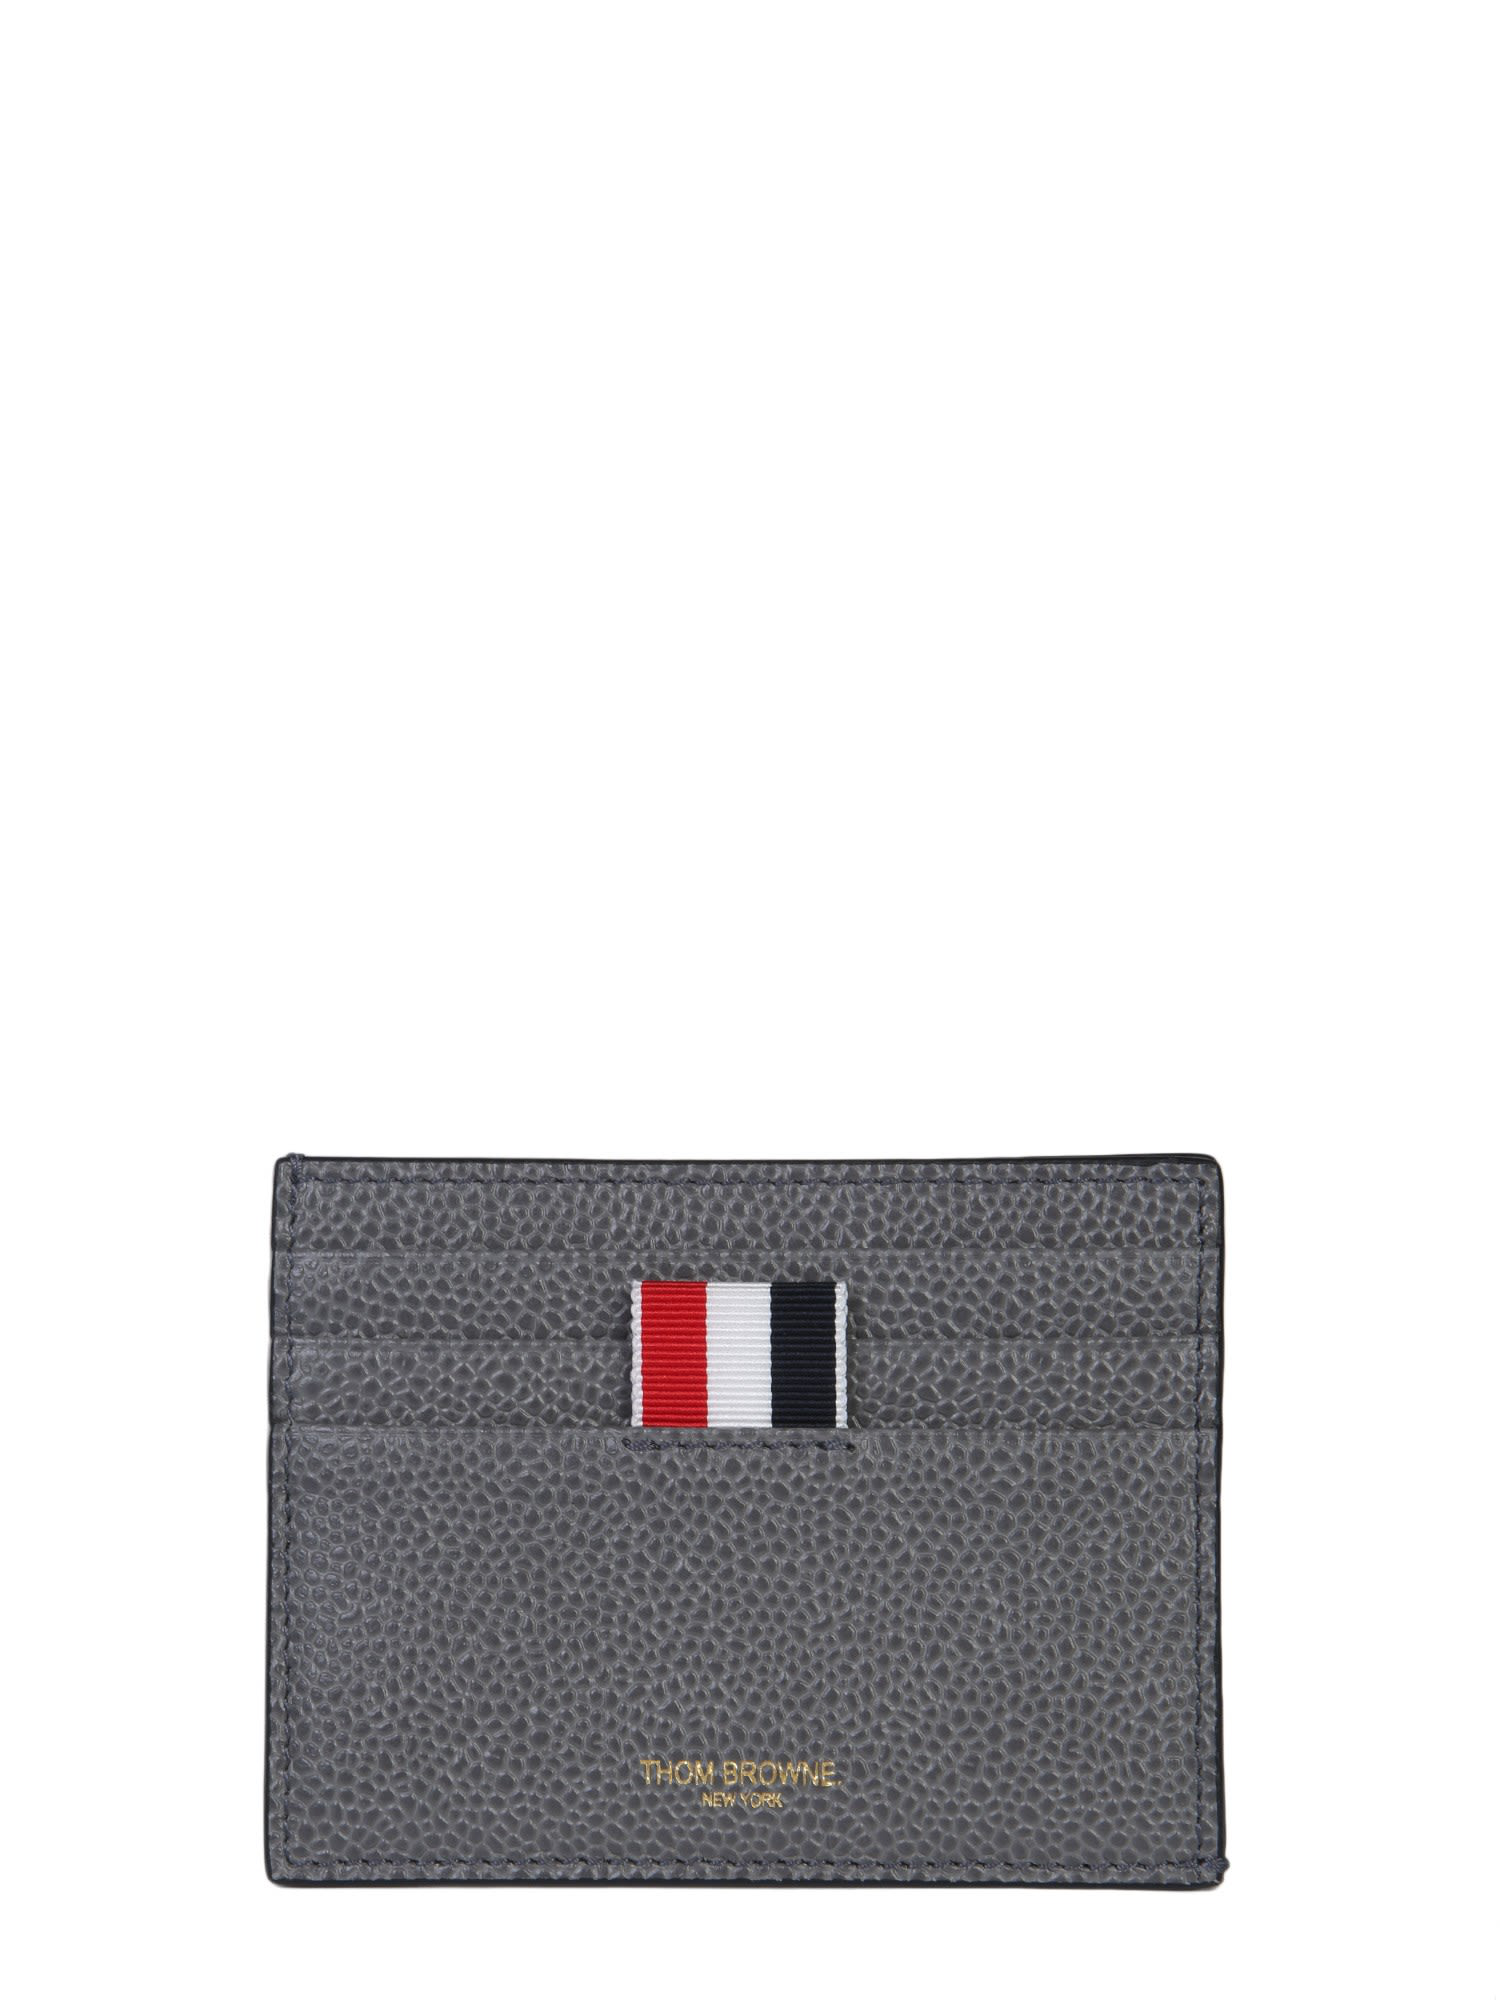 dc3e3d6cf4 Thom Browne Leather Card Holder In Grigio   ModeSens